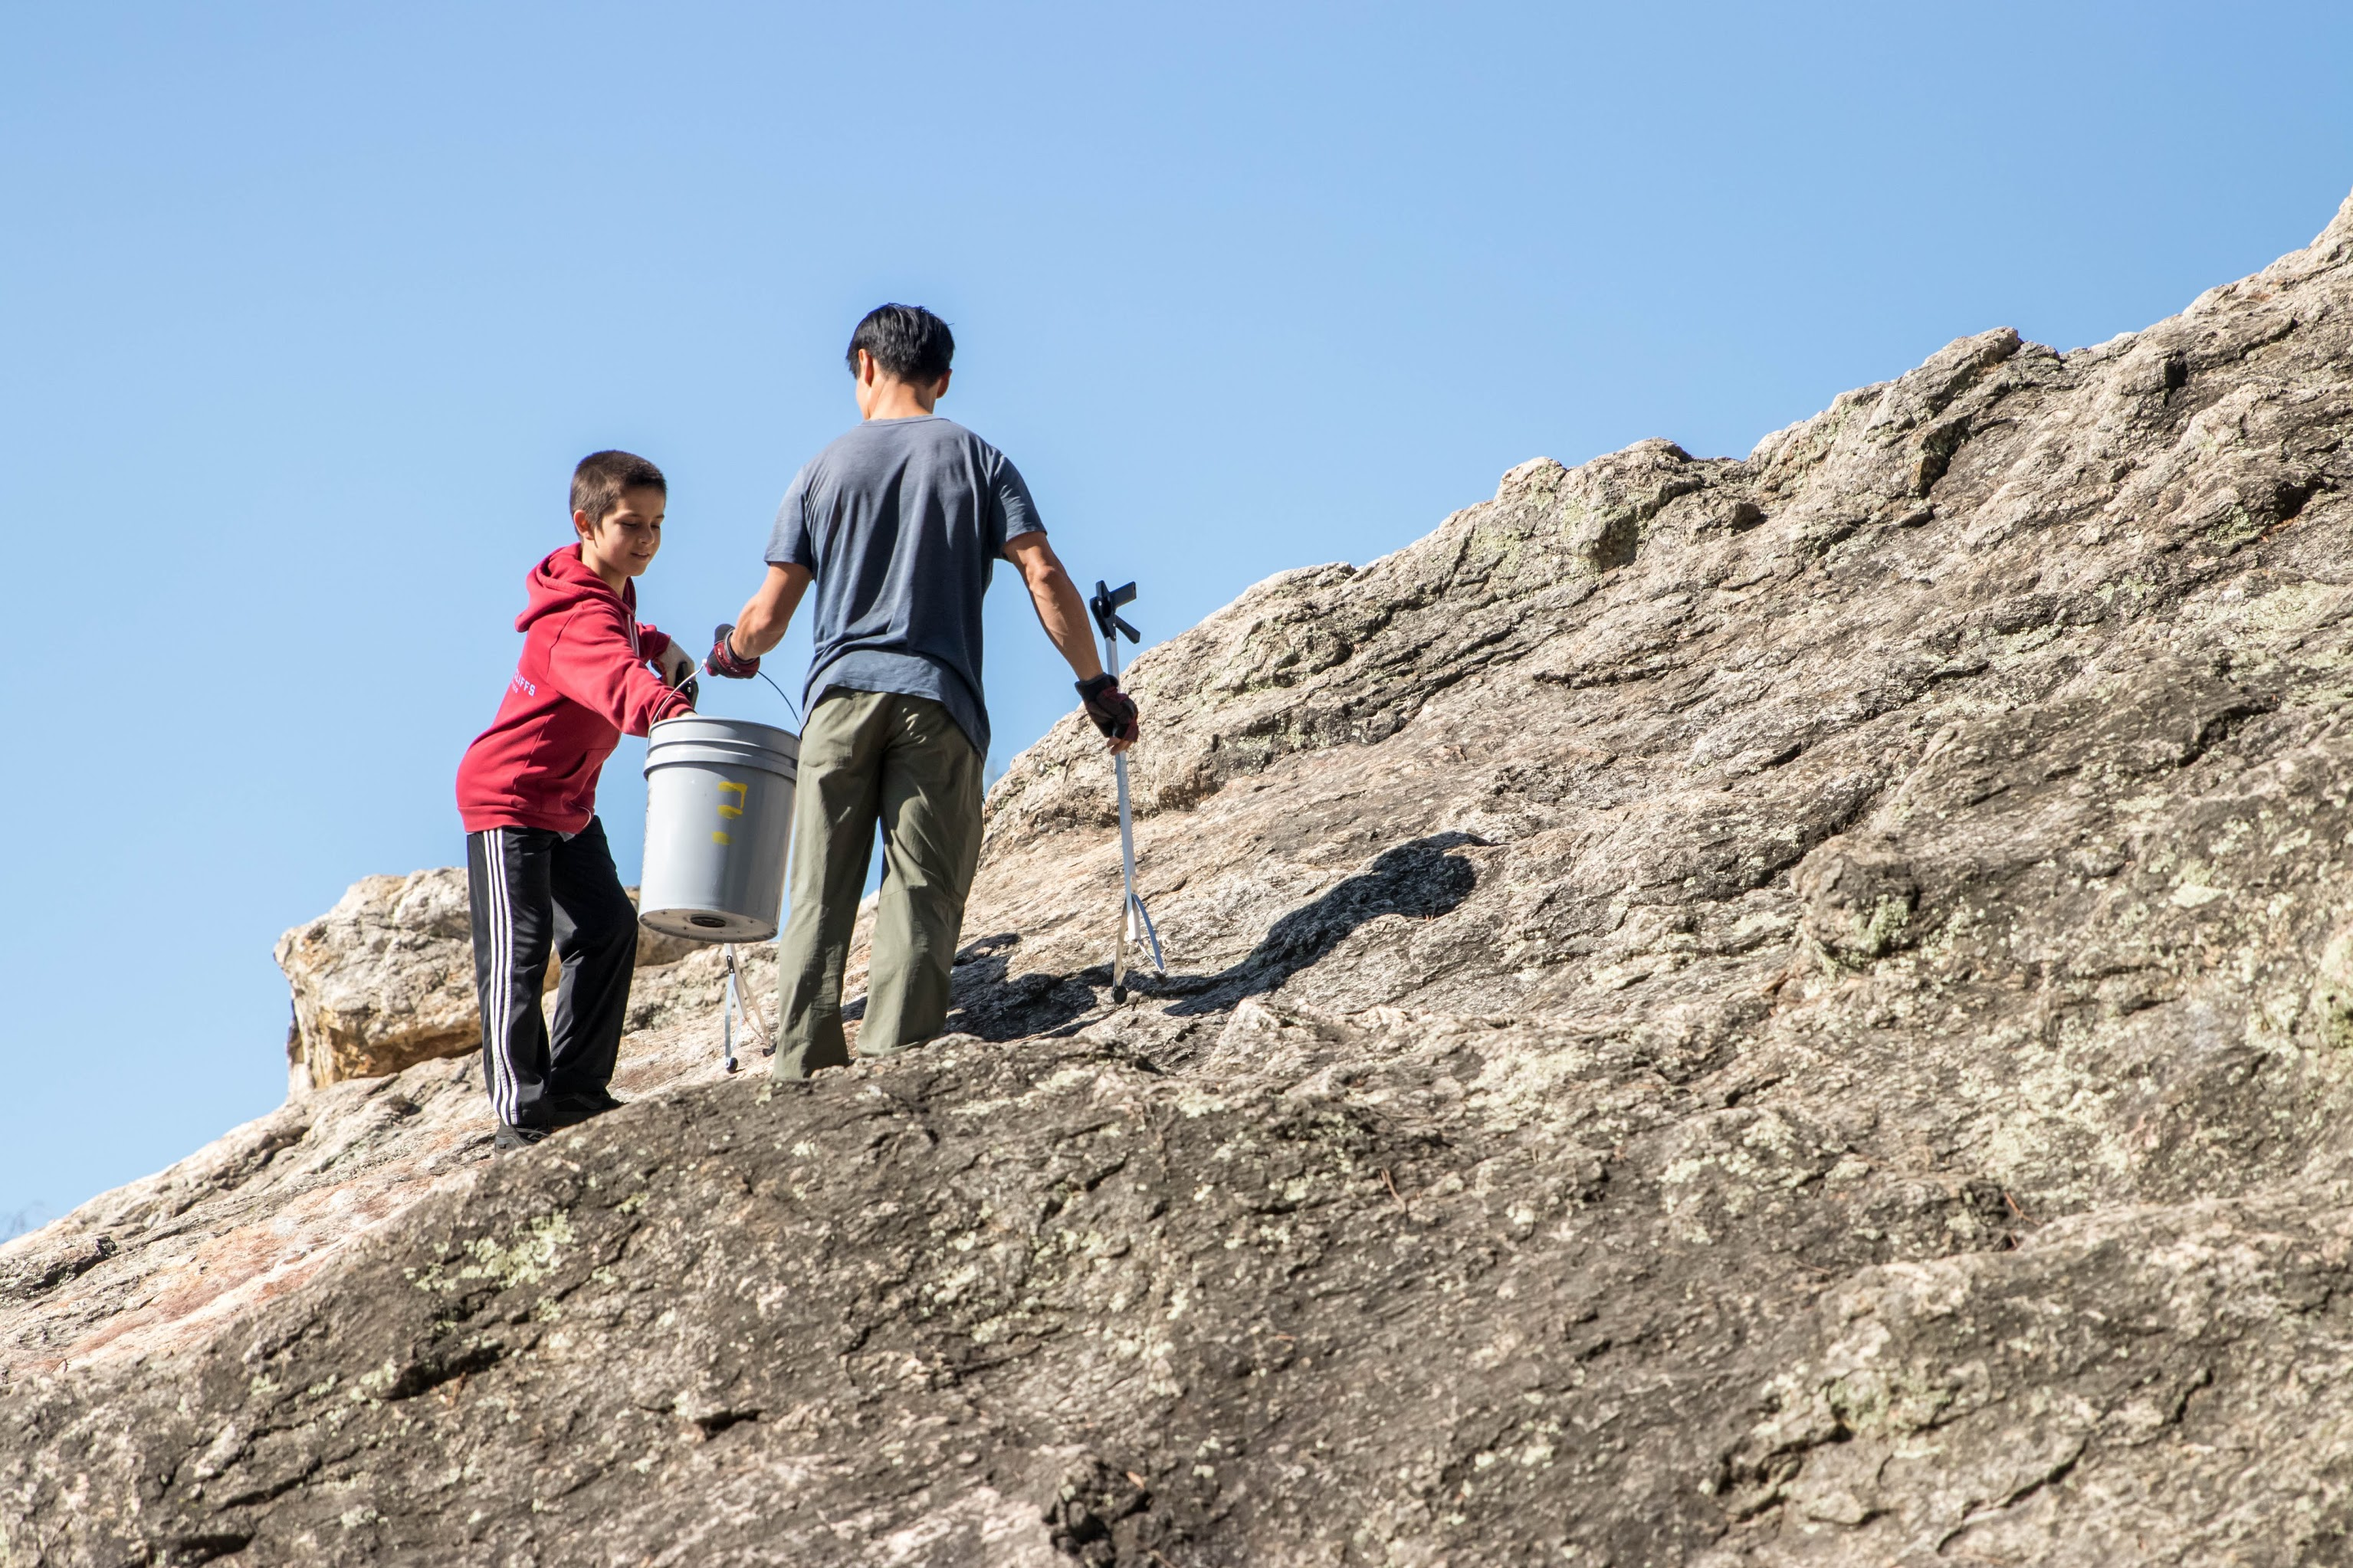 Two volunteers picking up litter on Indian Rock. Both hold grabbing tools. One holds a bucket.